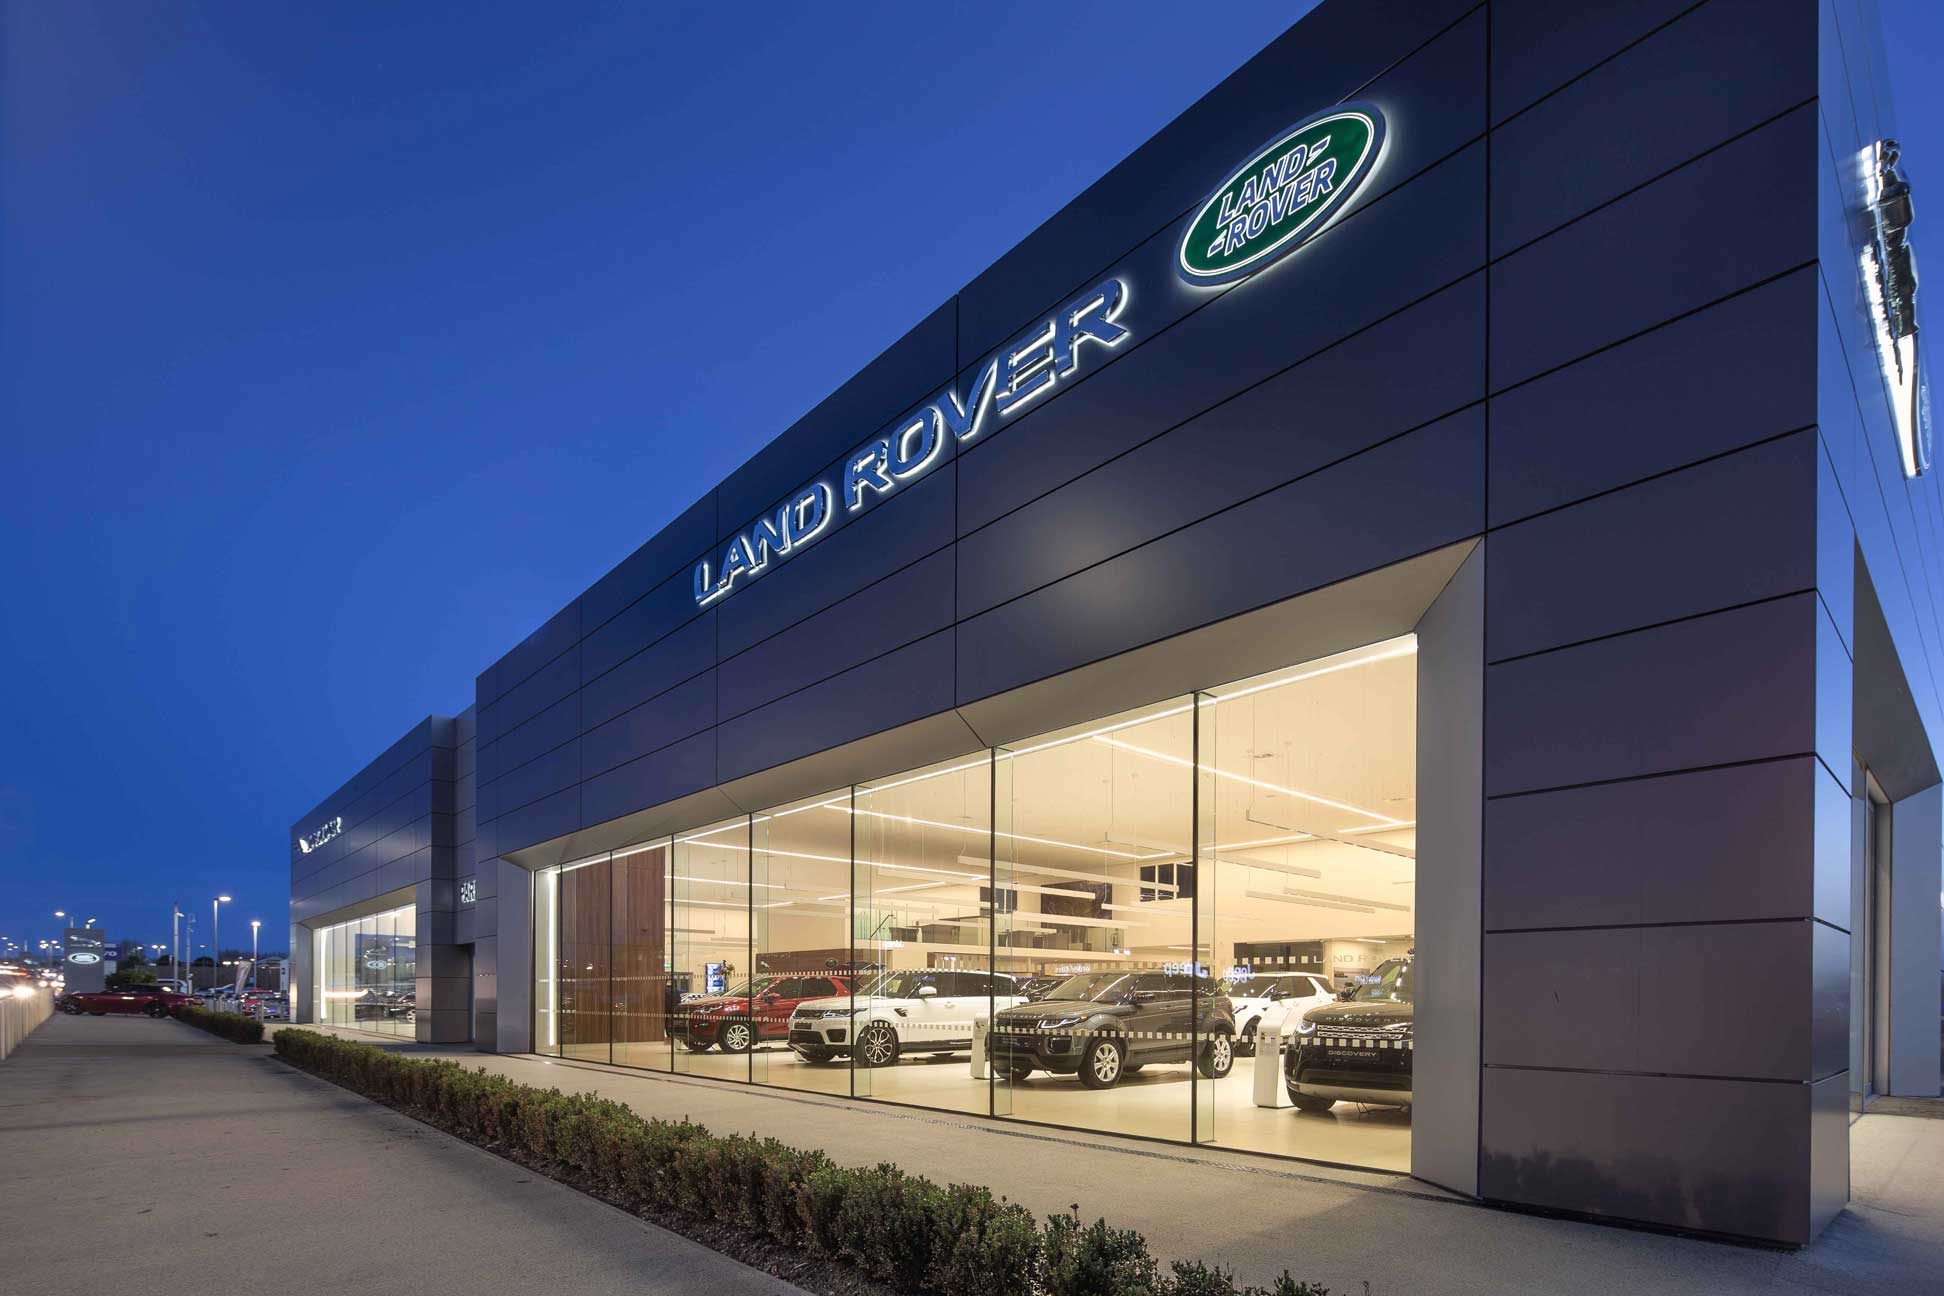 capturing the essence of luxury brands Jaguar Land Rover through construction using modern Alucobond Fascades.